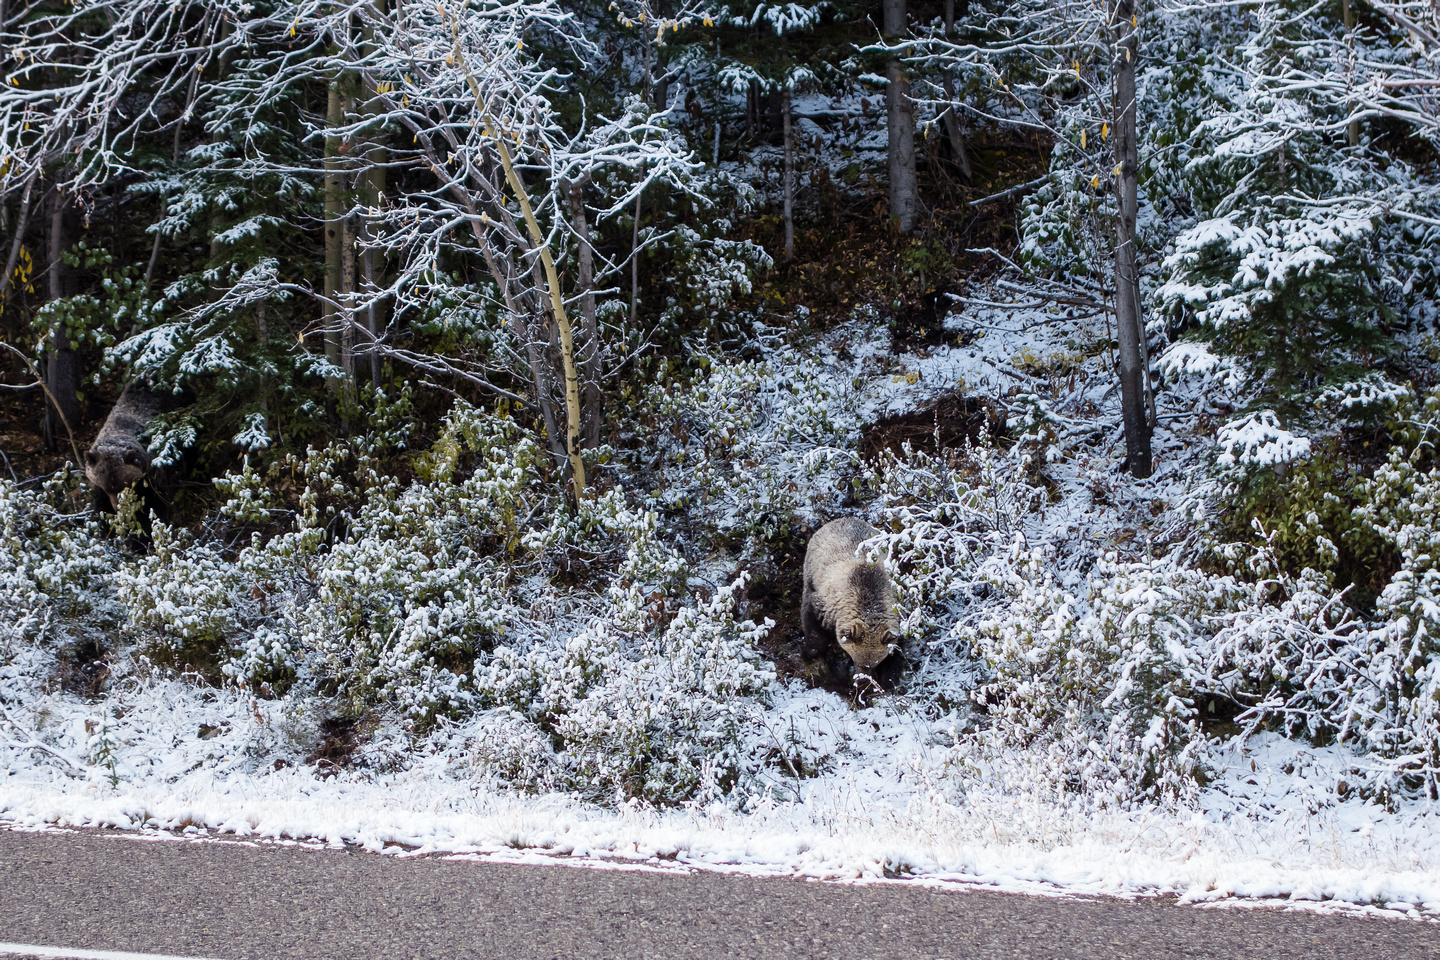 Part of a family of 4 grizzlies that we saw eating breakfast along highway 40 around Wedge Pond.